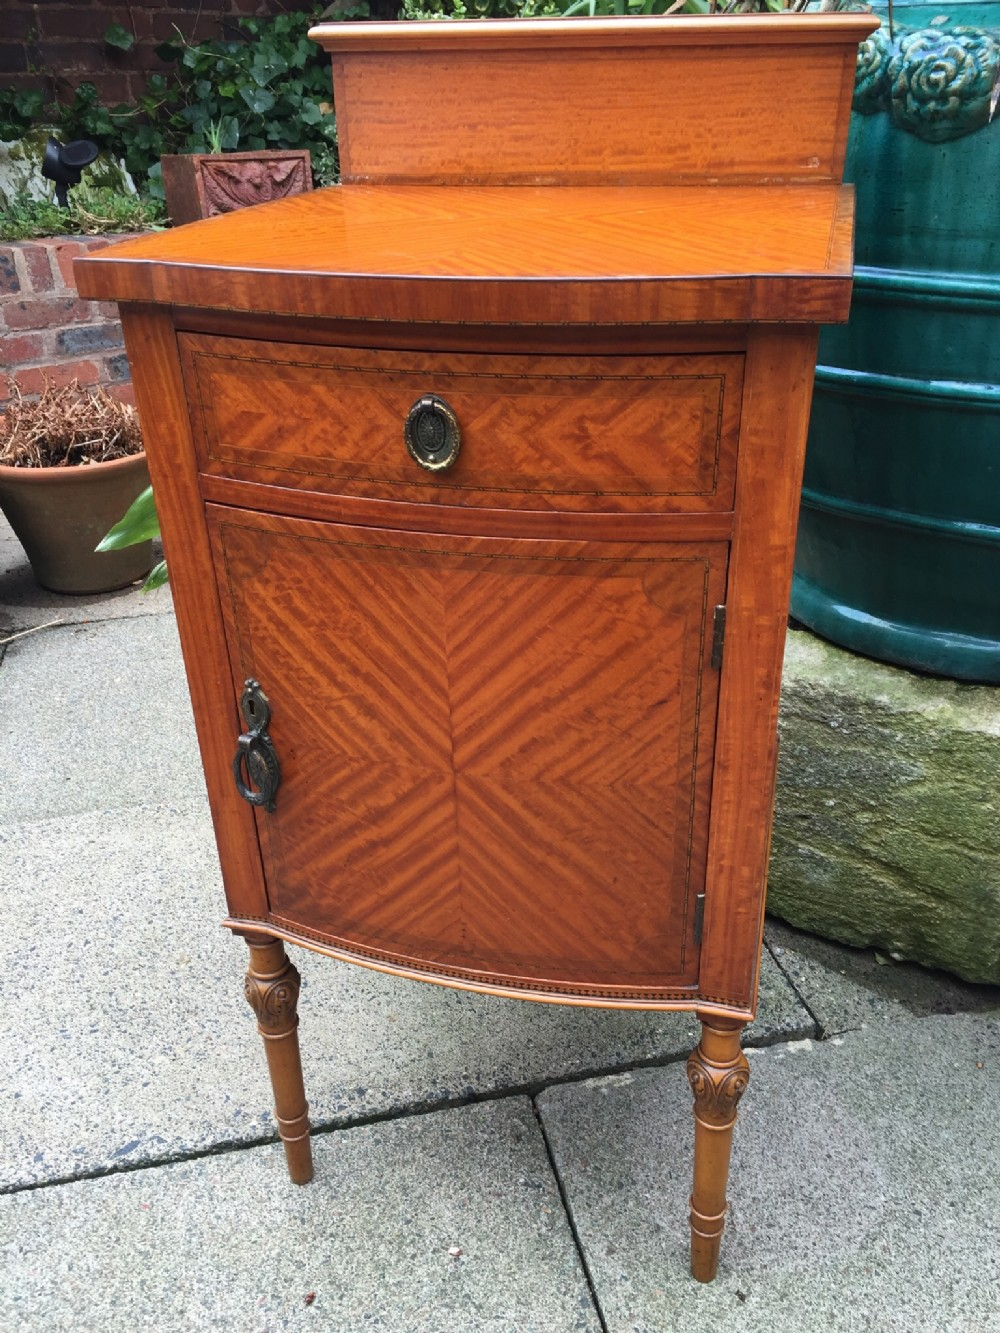 fine quality late c19th early c20th edwardian period satinwood bedside cupboard